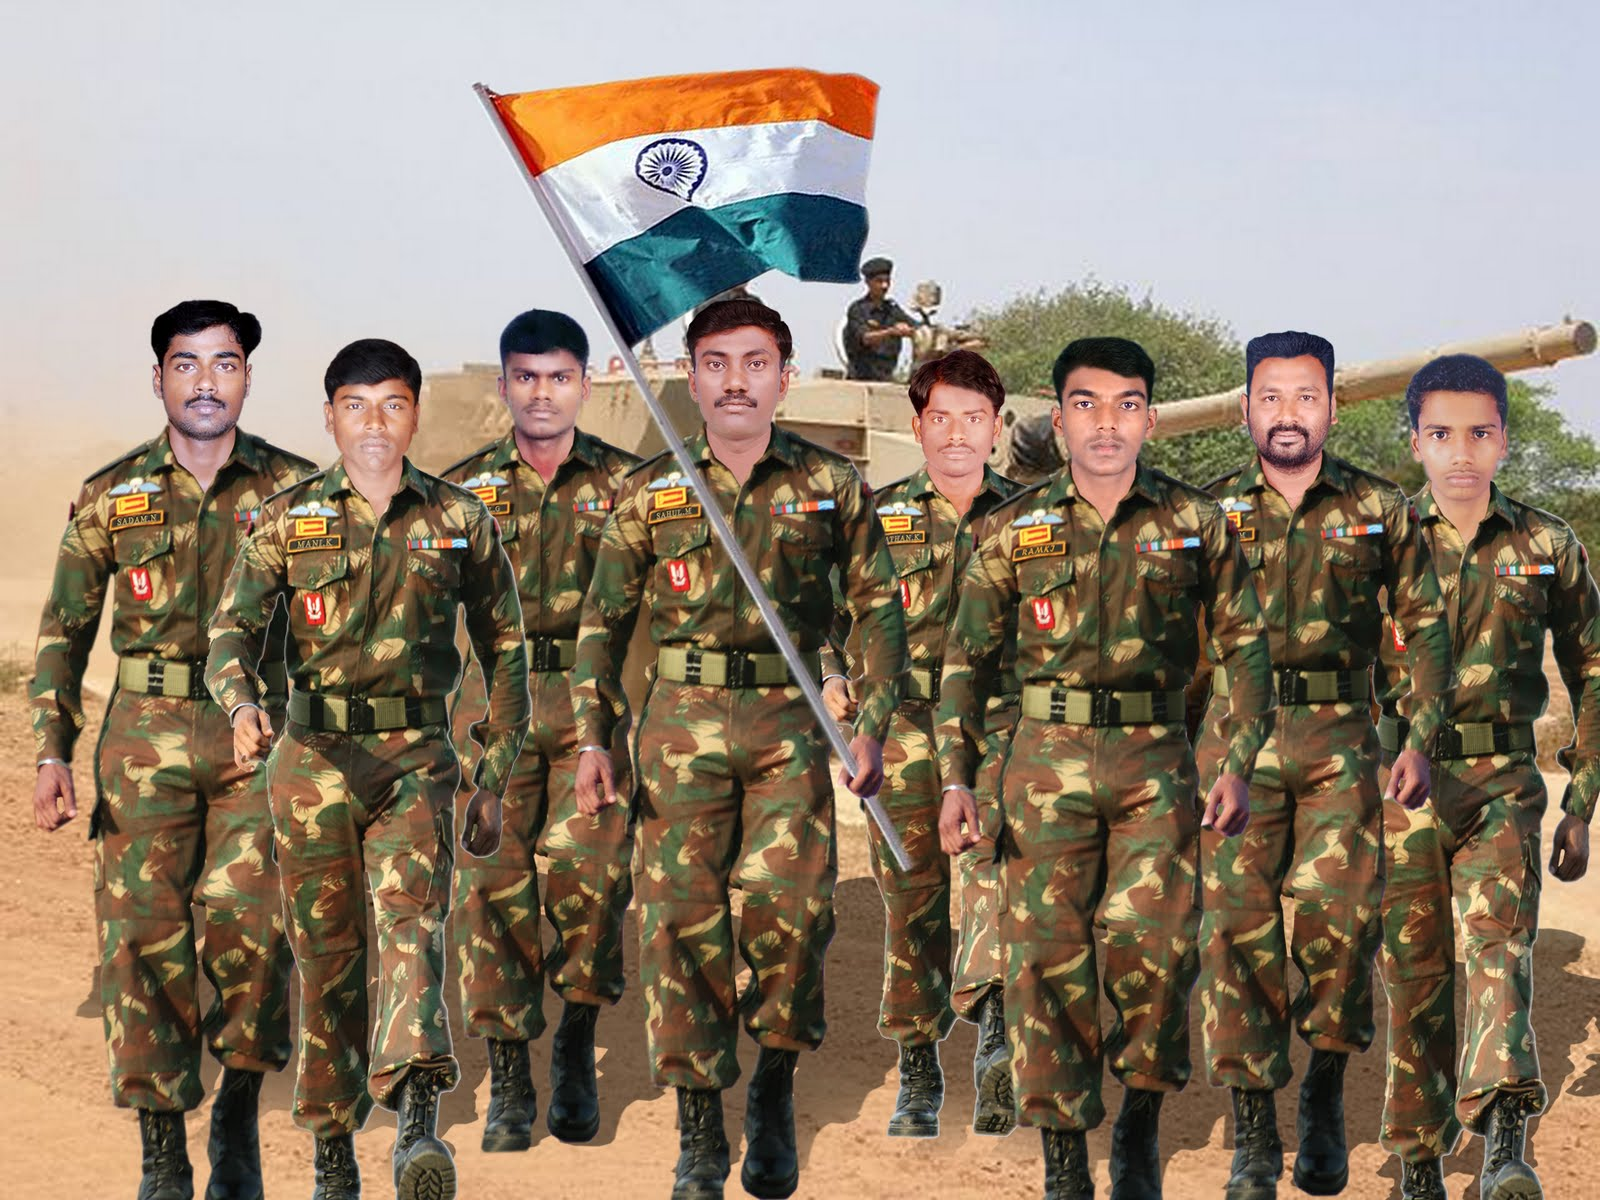 indian army Online registration, admit cards, rally schedule, rally results & online form of join indian army recruitment at wwwjoinindianarmynicin.